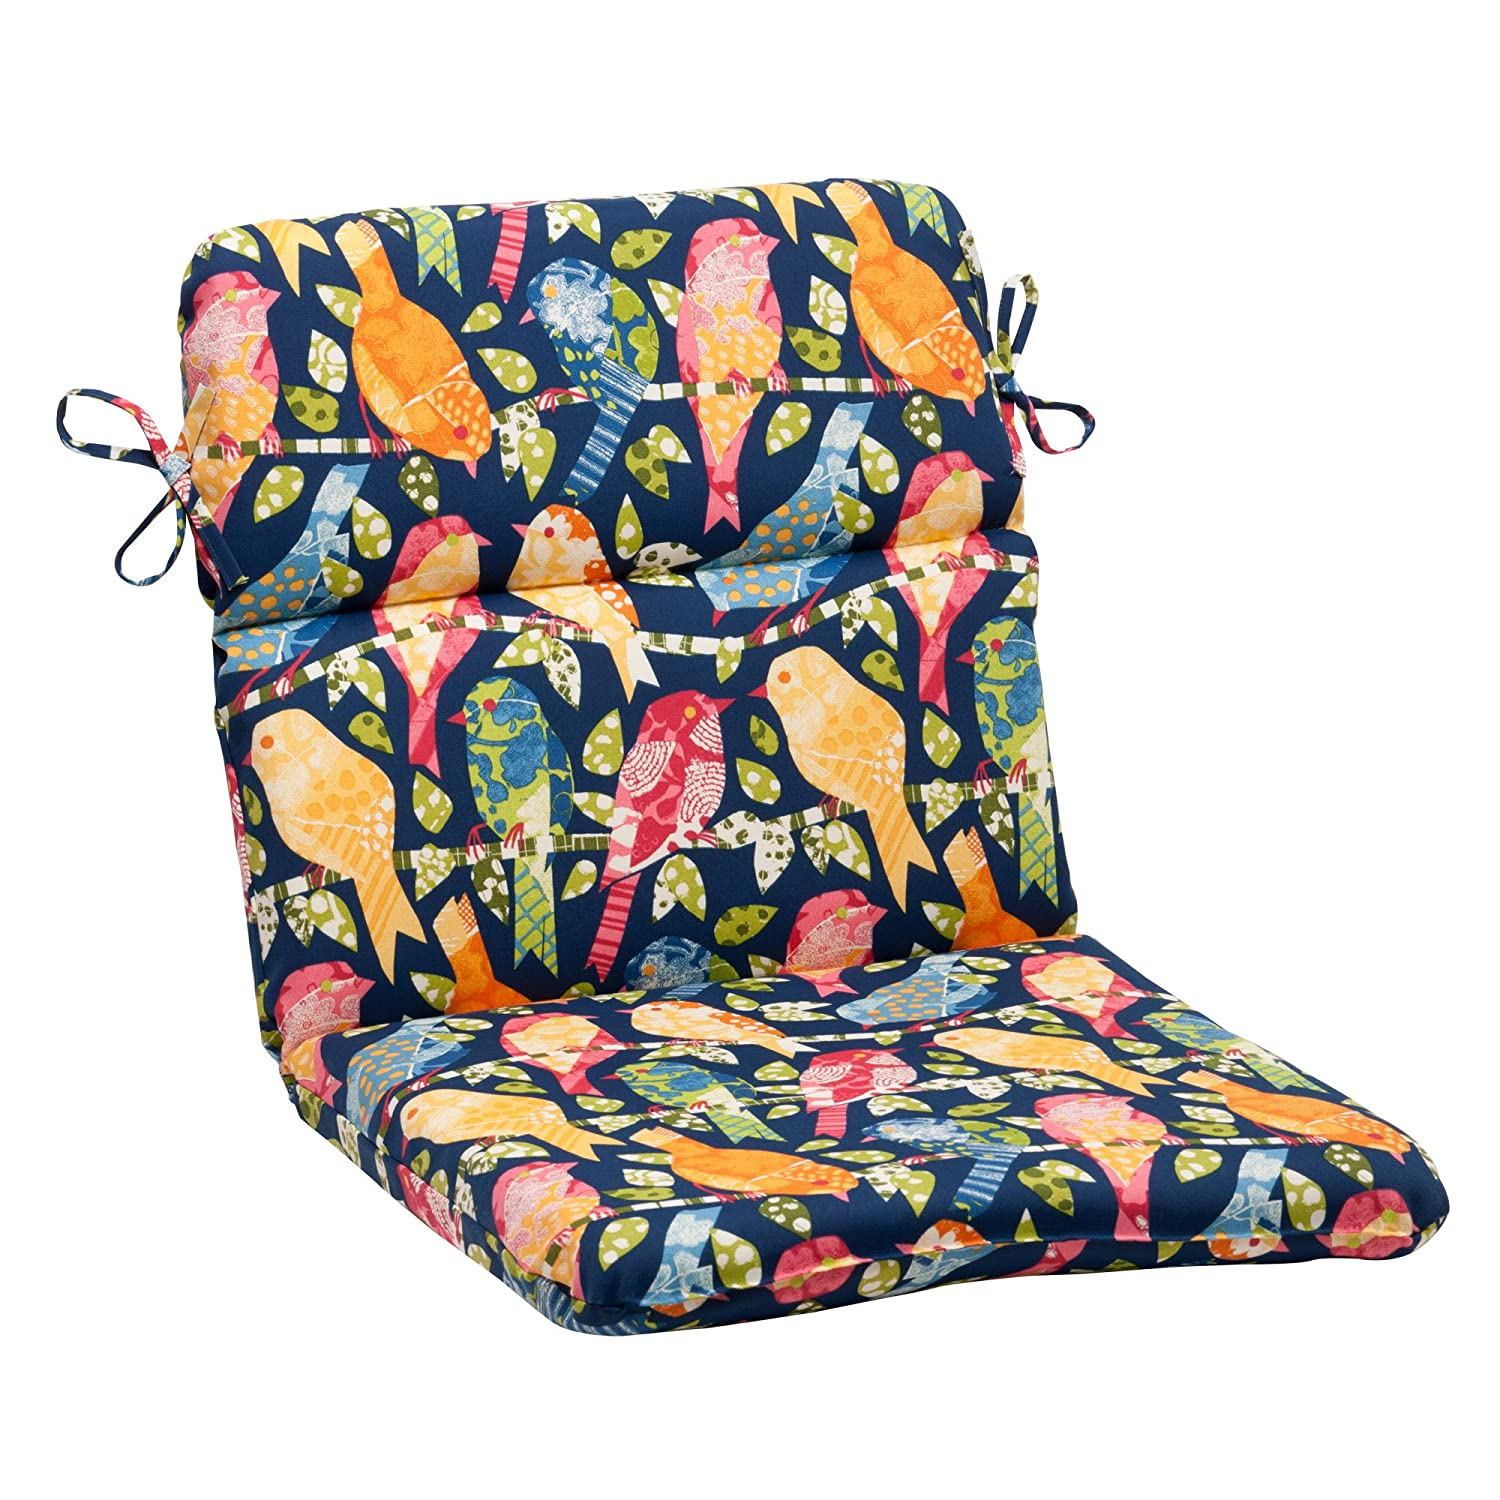 Pillow Perfect Outdoor Ash Hill Rounded Chair Cushion, Navy